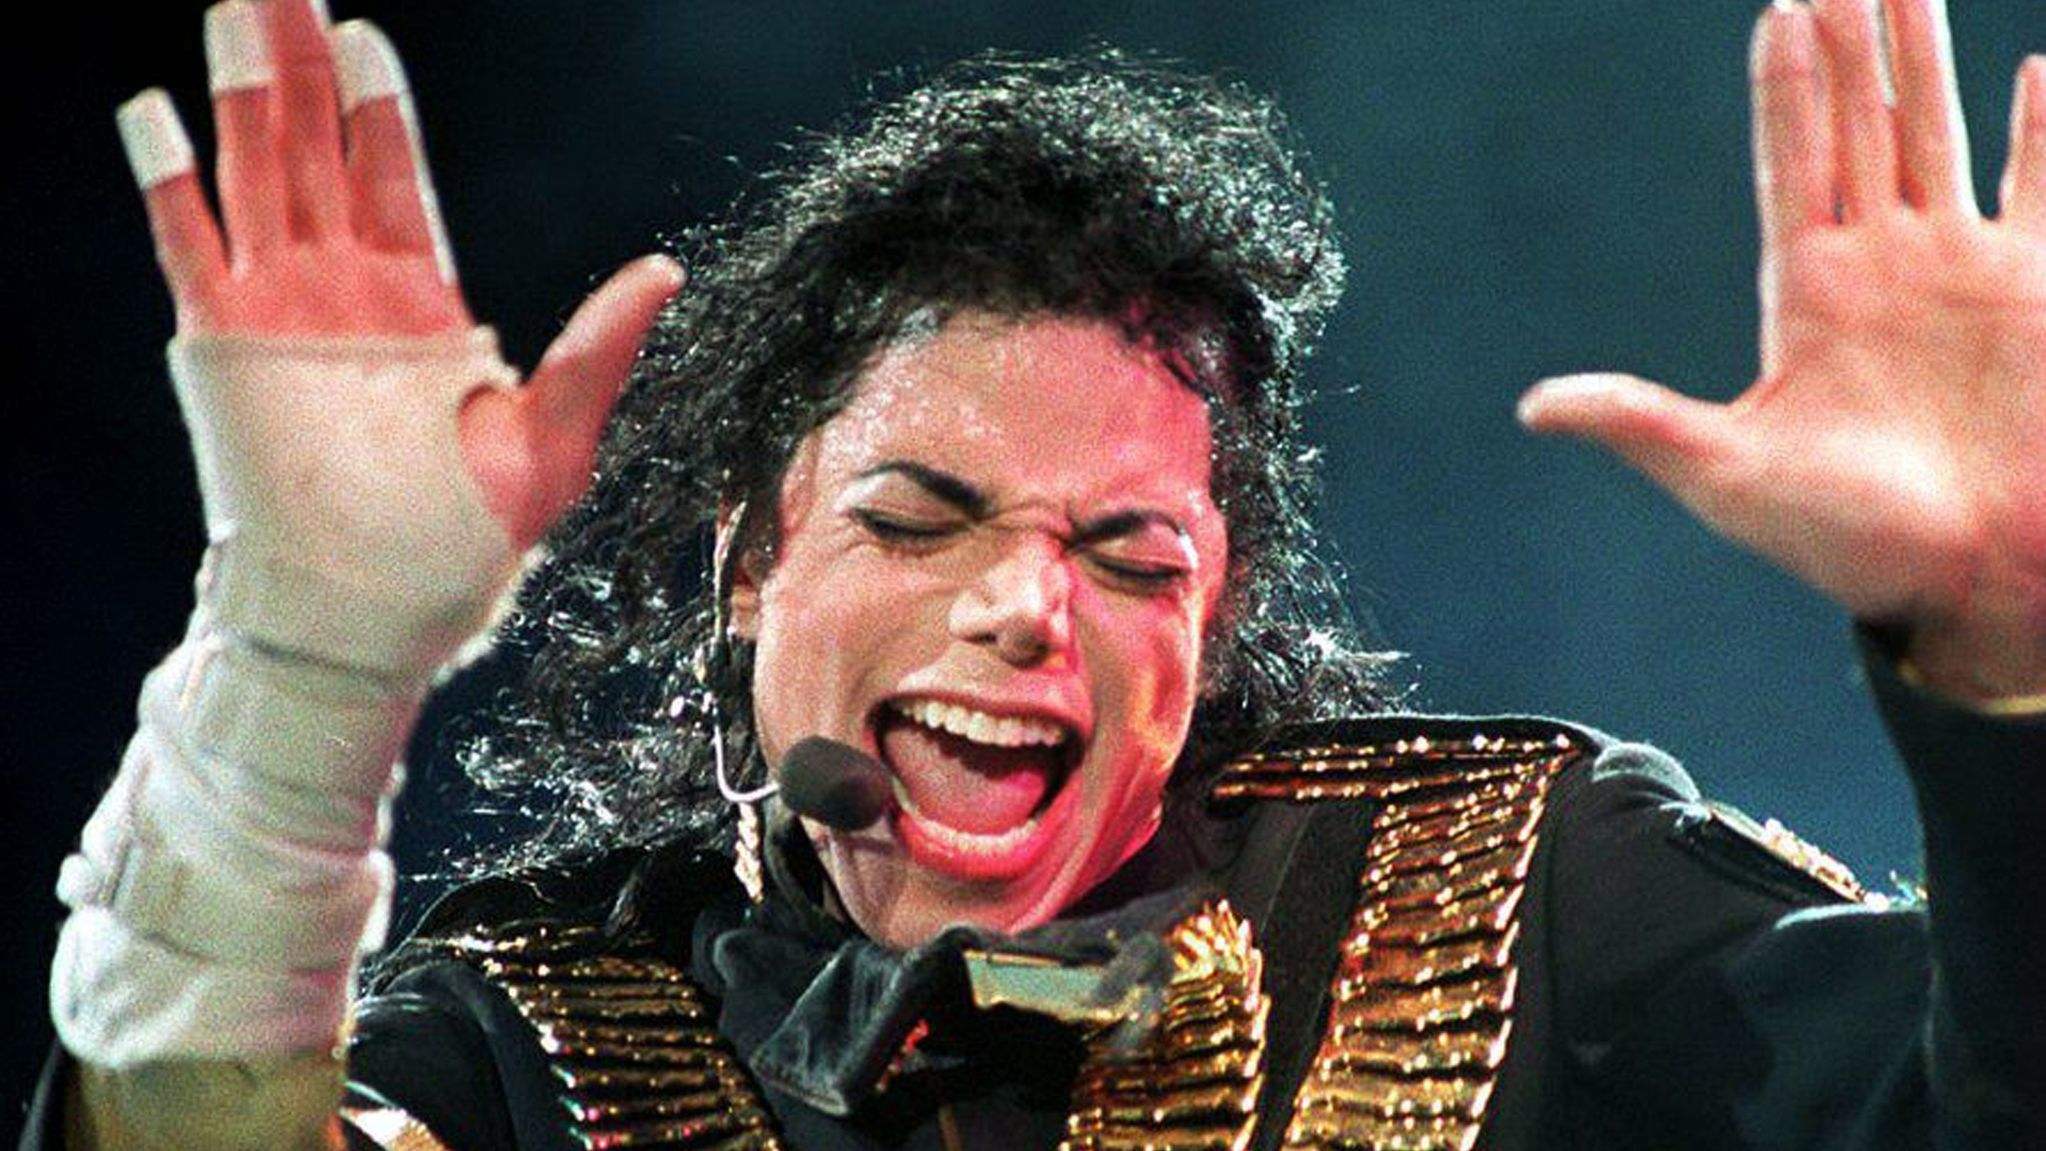 Debating Michael Jackson, the new 'Don't Stop' musical and the 'complexity defense'